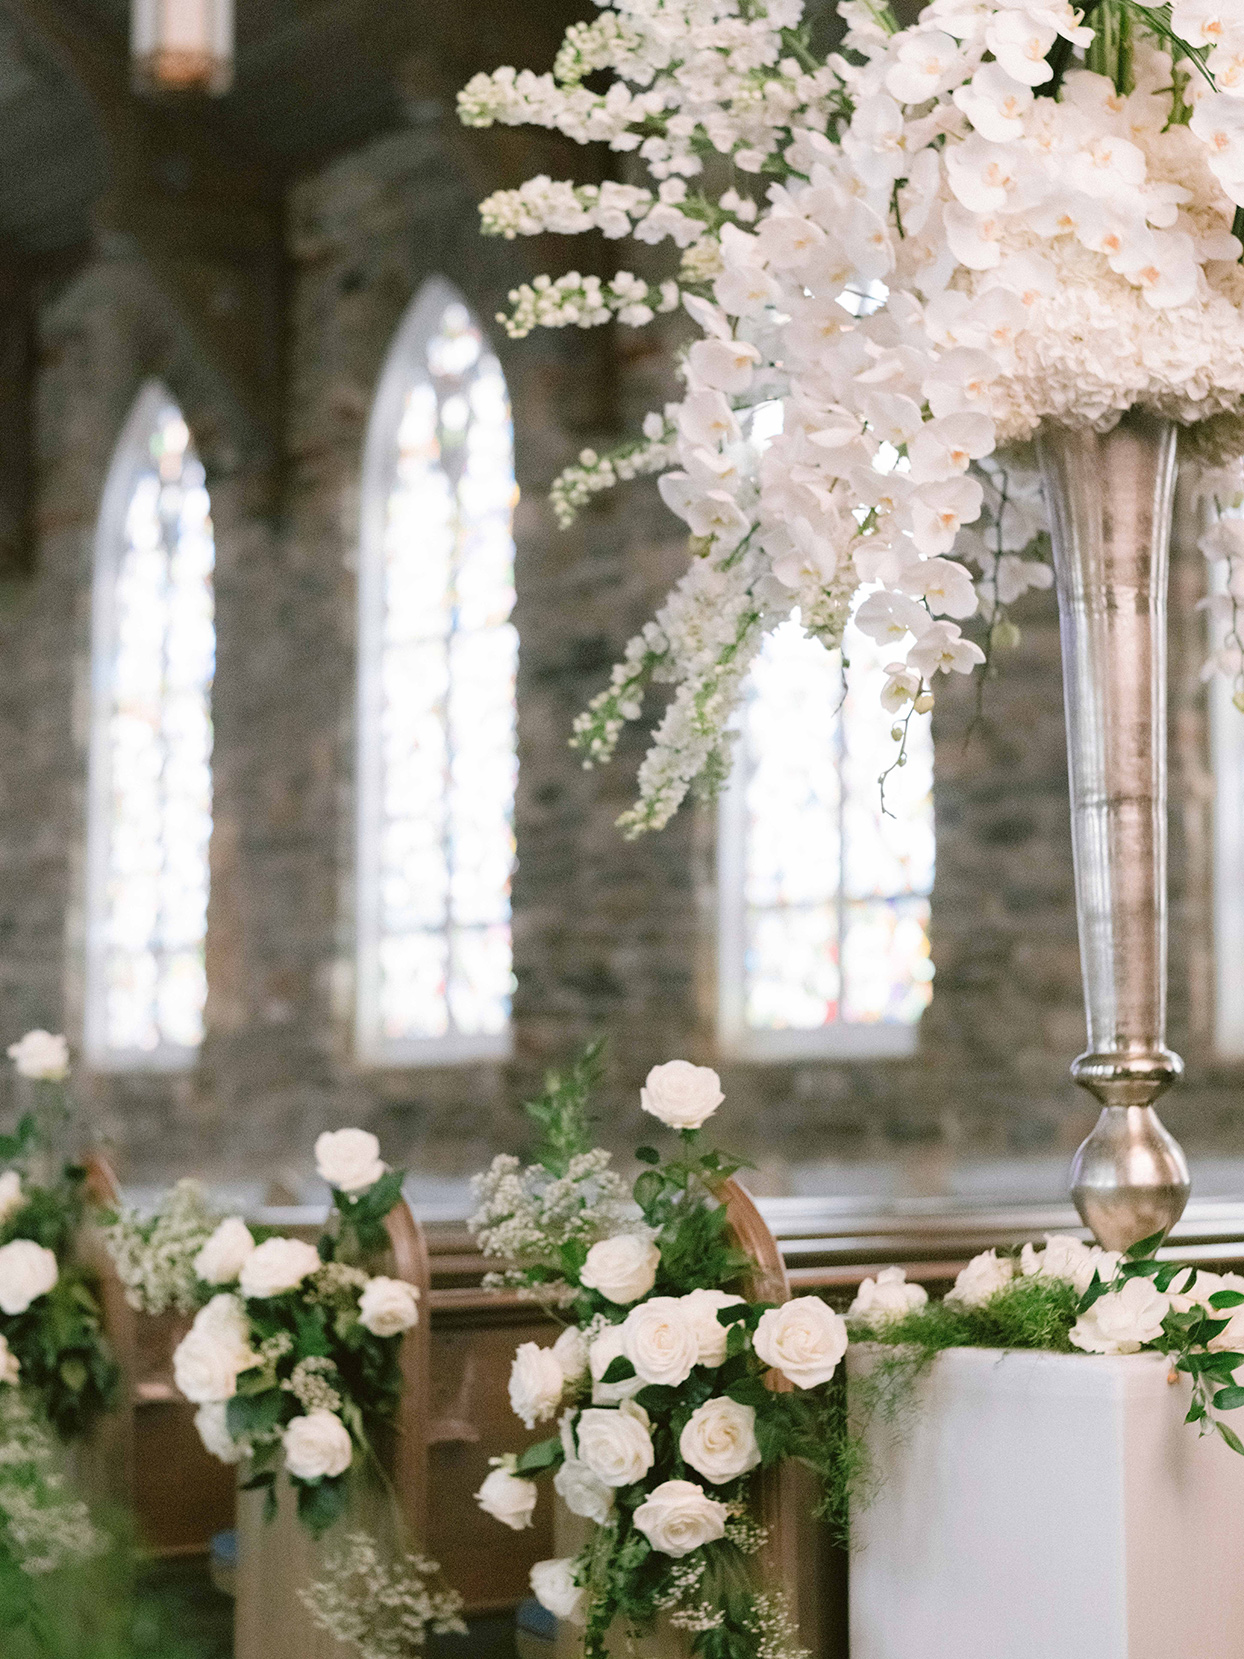 elegant church decorated in white flowers for wedding